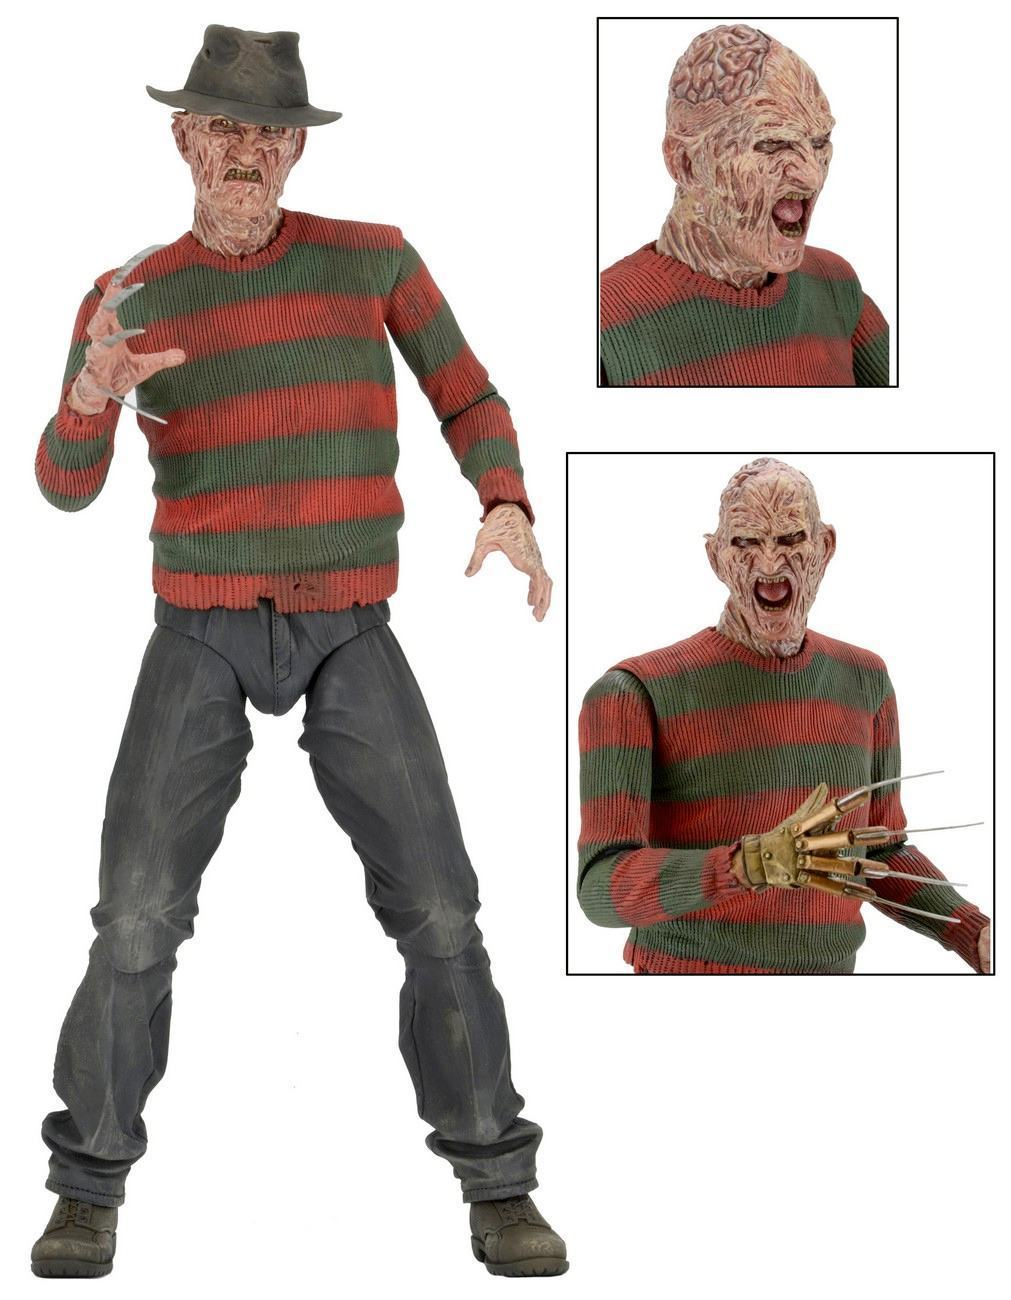 Nightmare-on-Elm-Street-Part-2-Freddys-Revenge-1-4-Scale-Action-Figure-07